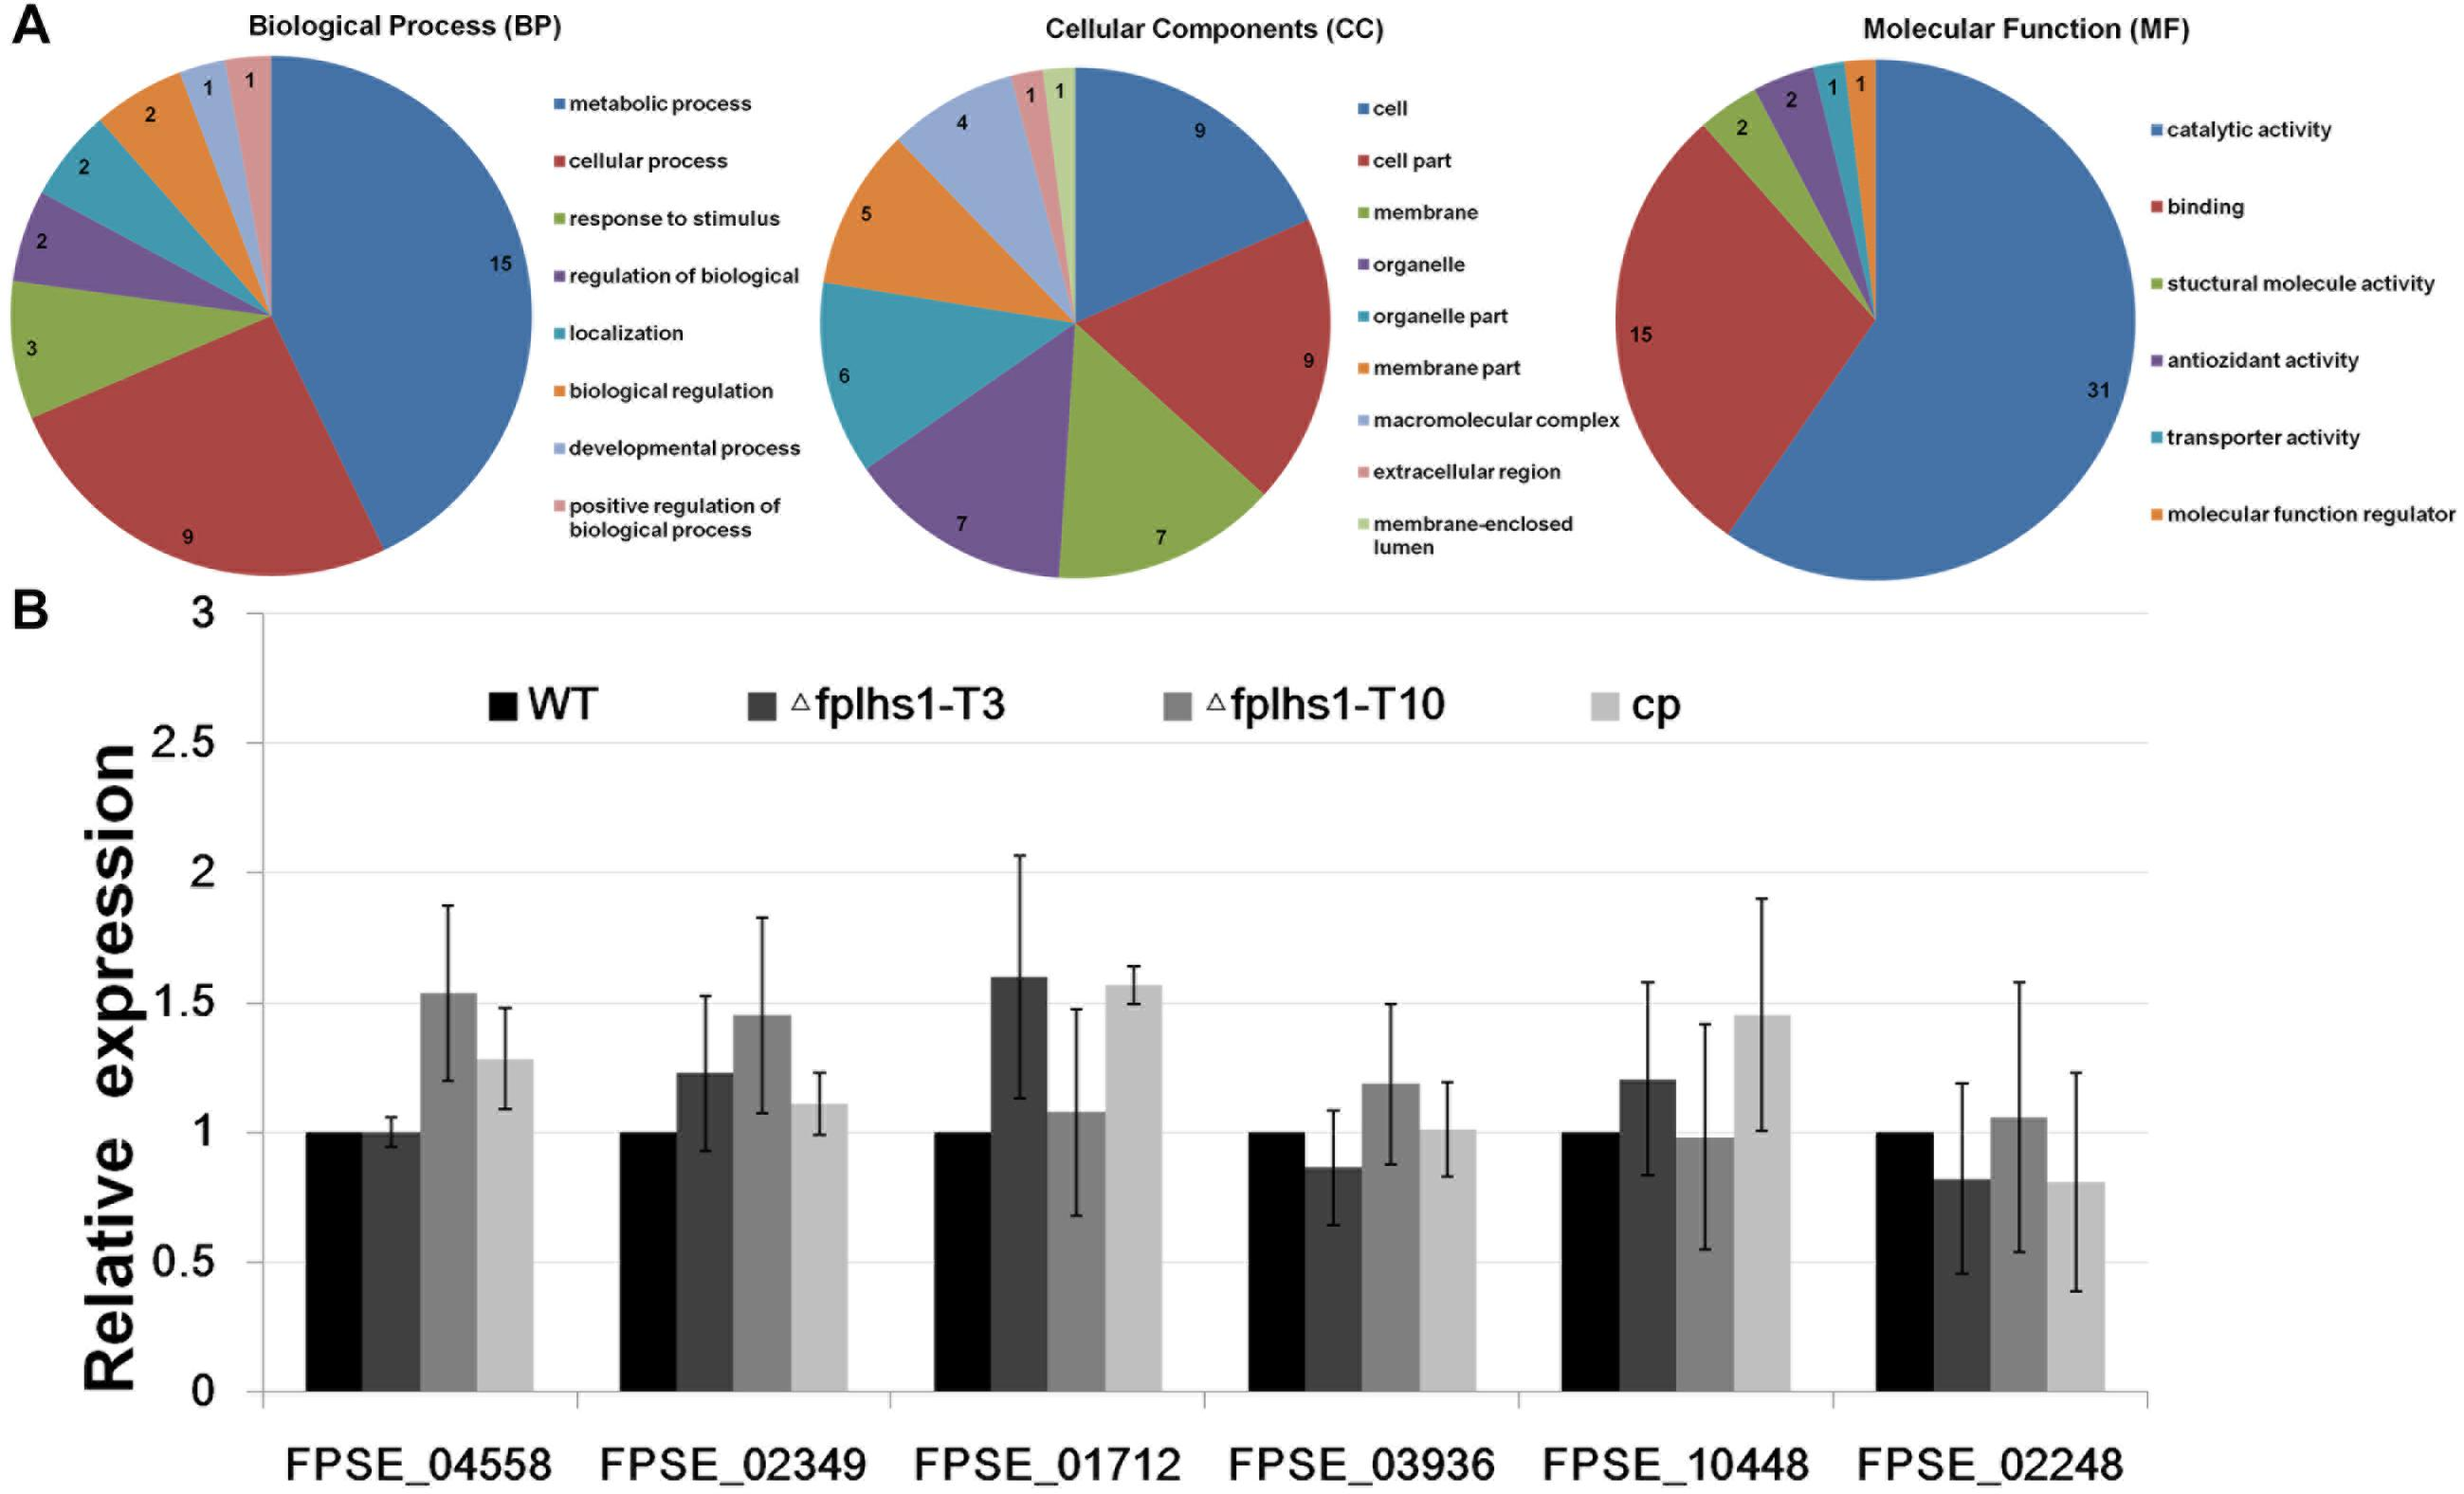 Frontiers | The ER Lumenal Hsp70 Protein FpLhs1 Is Important